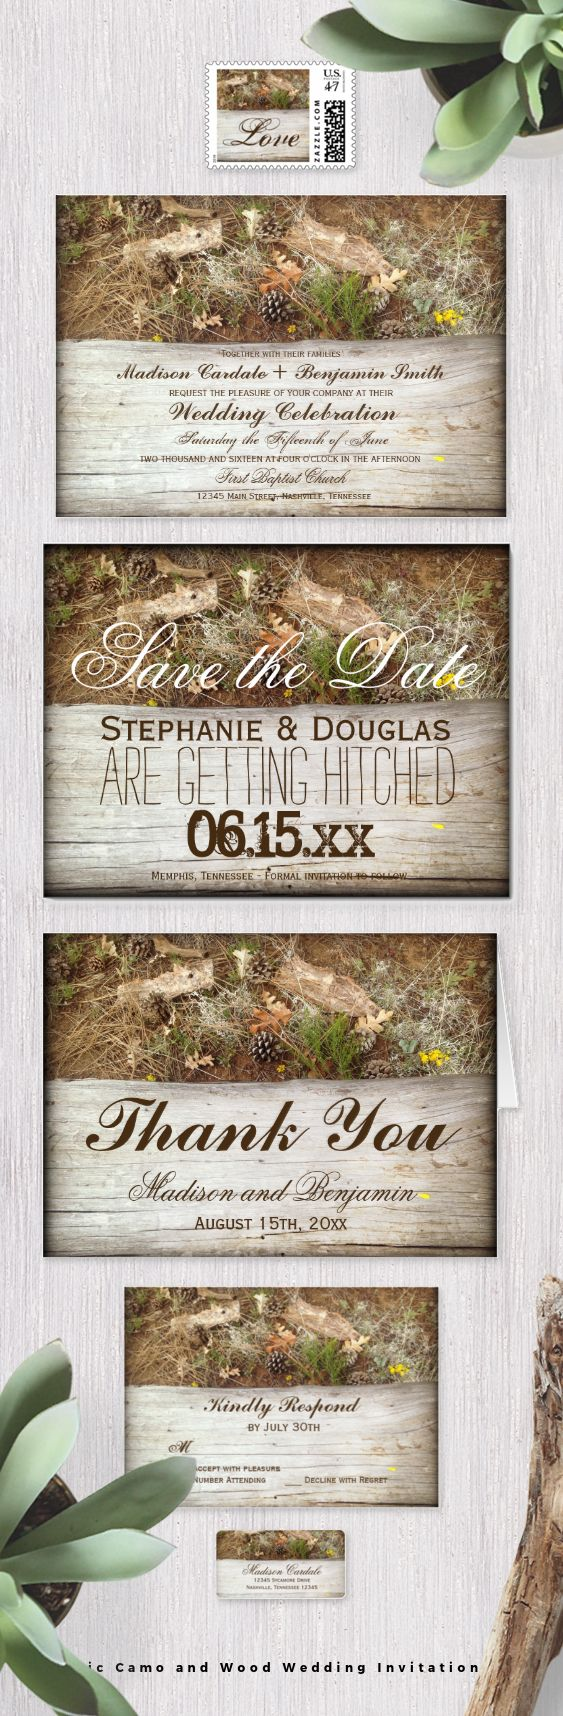 realtree wedding invitations%0A Rustic Country Camo and Wood Wedding Invitation Set for a hunting theme or  nature theme wedding